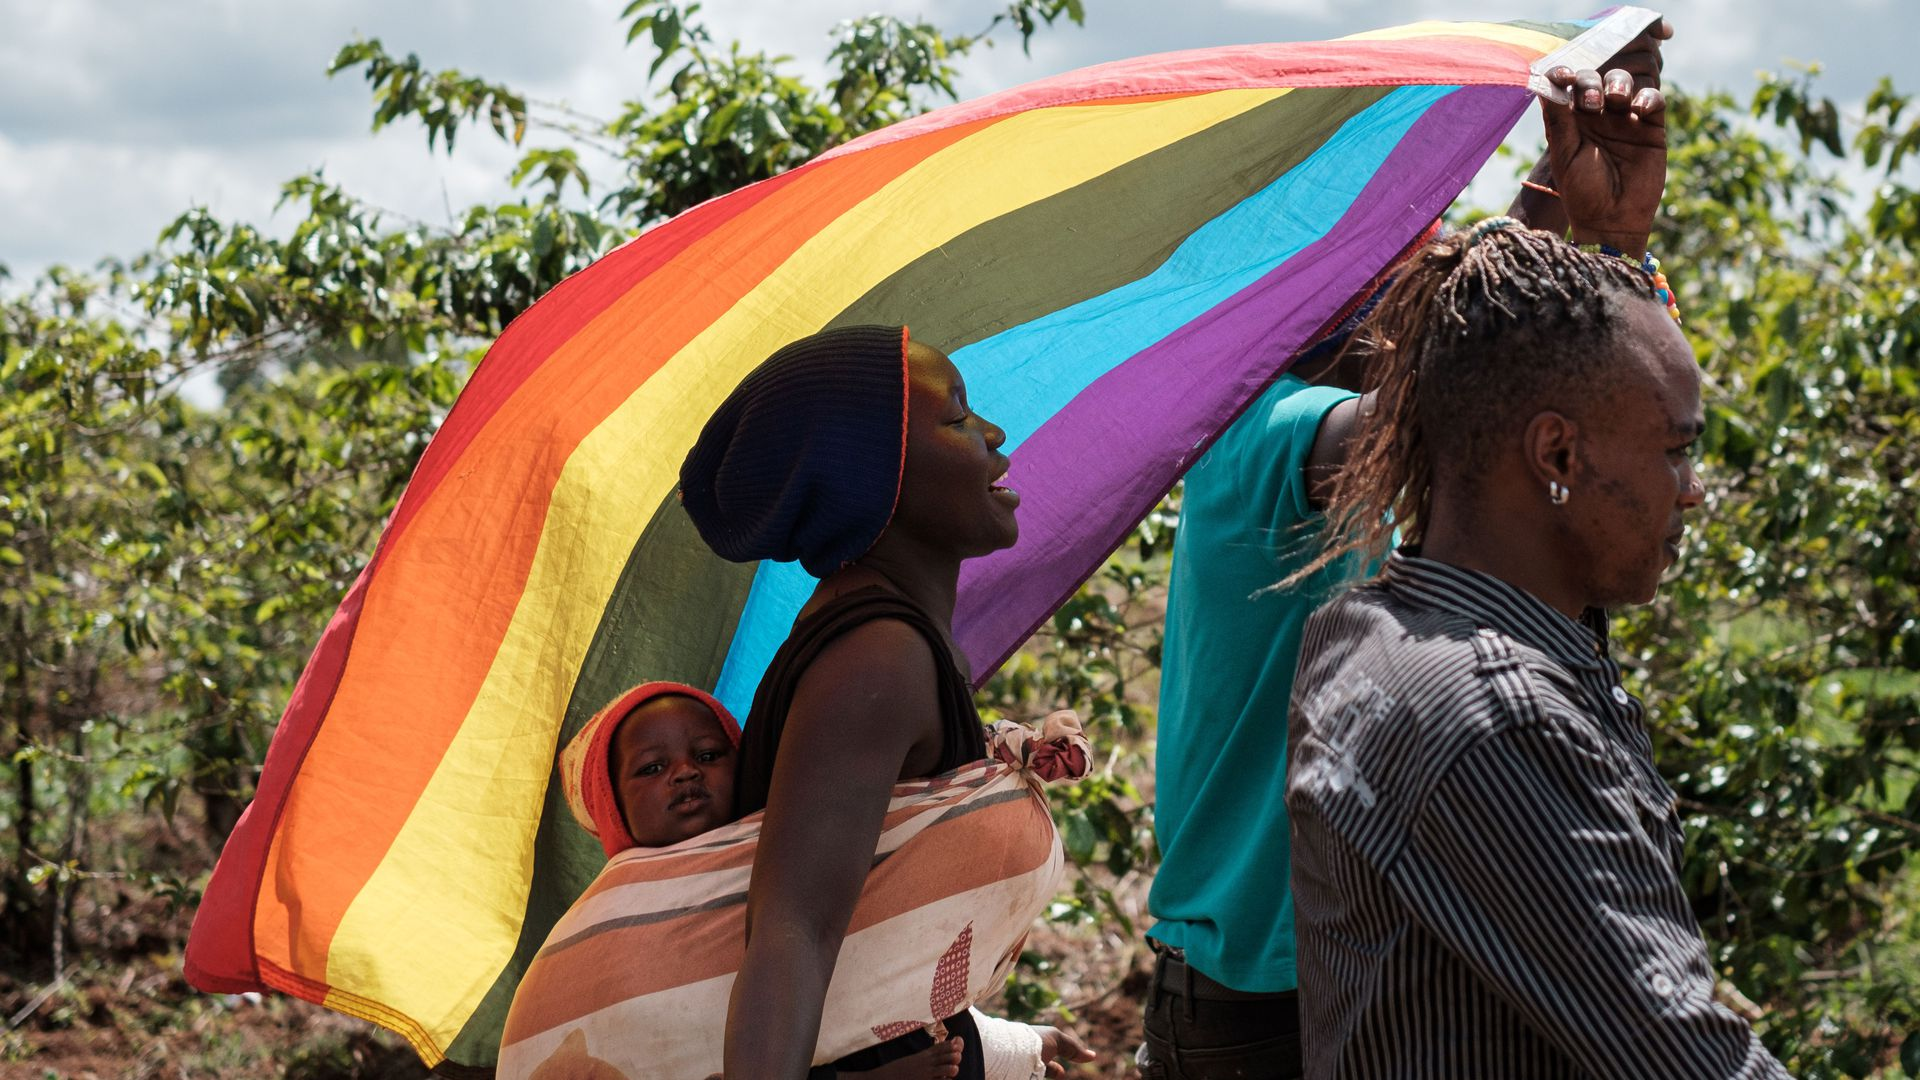 In this image, a man carries a rainbow flag while a woman carrying a baby in a papoose follows behind him.